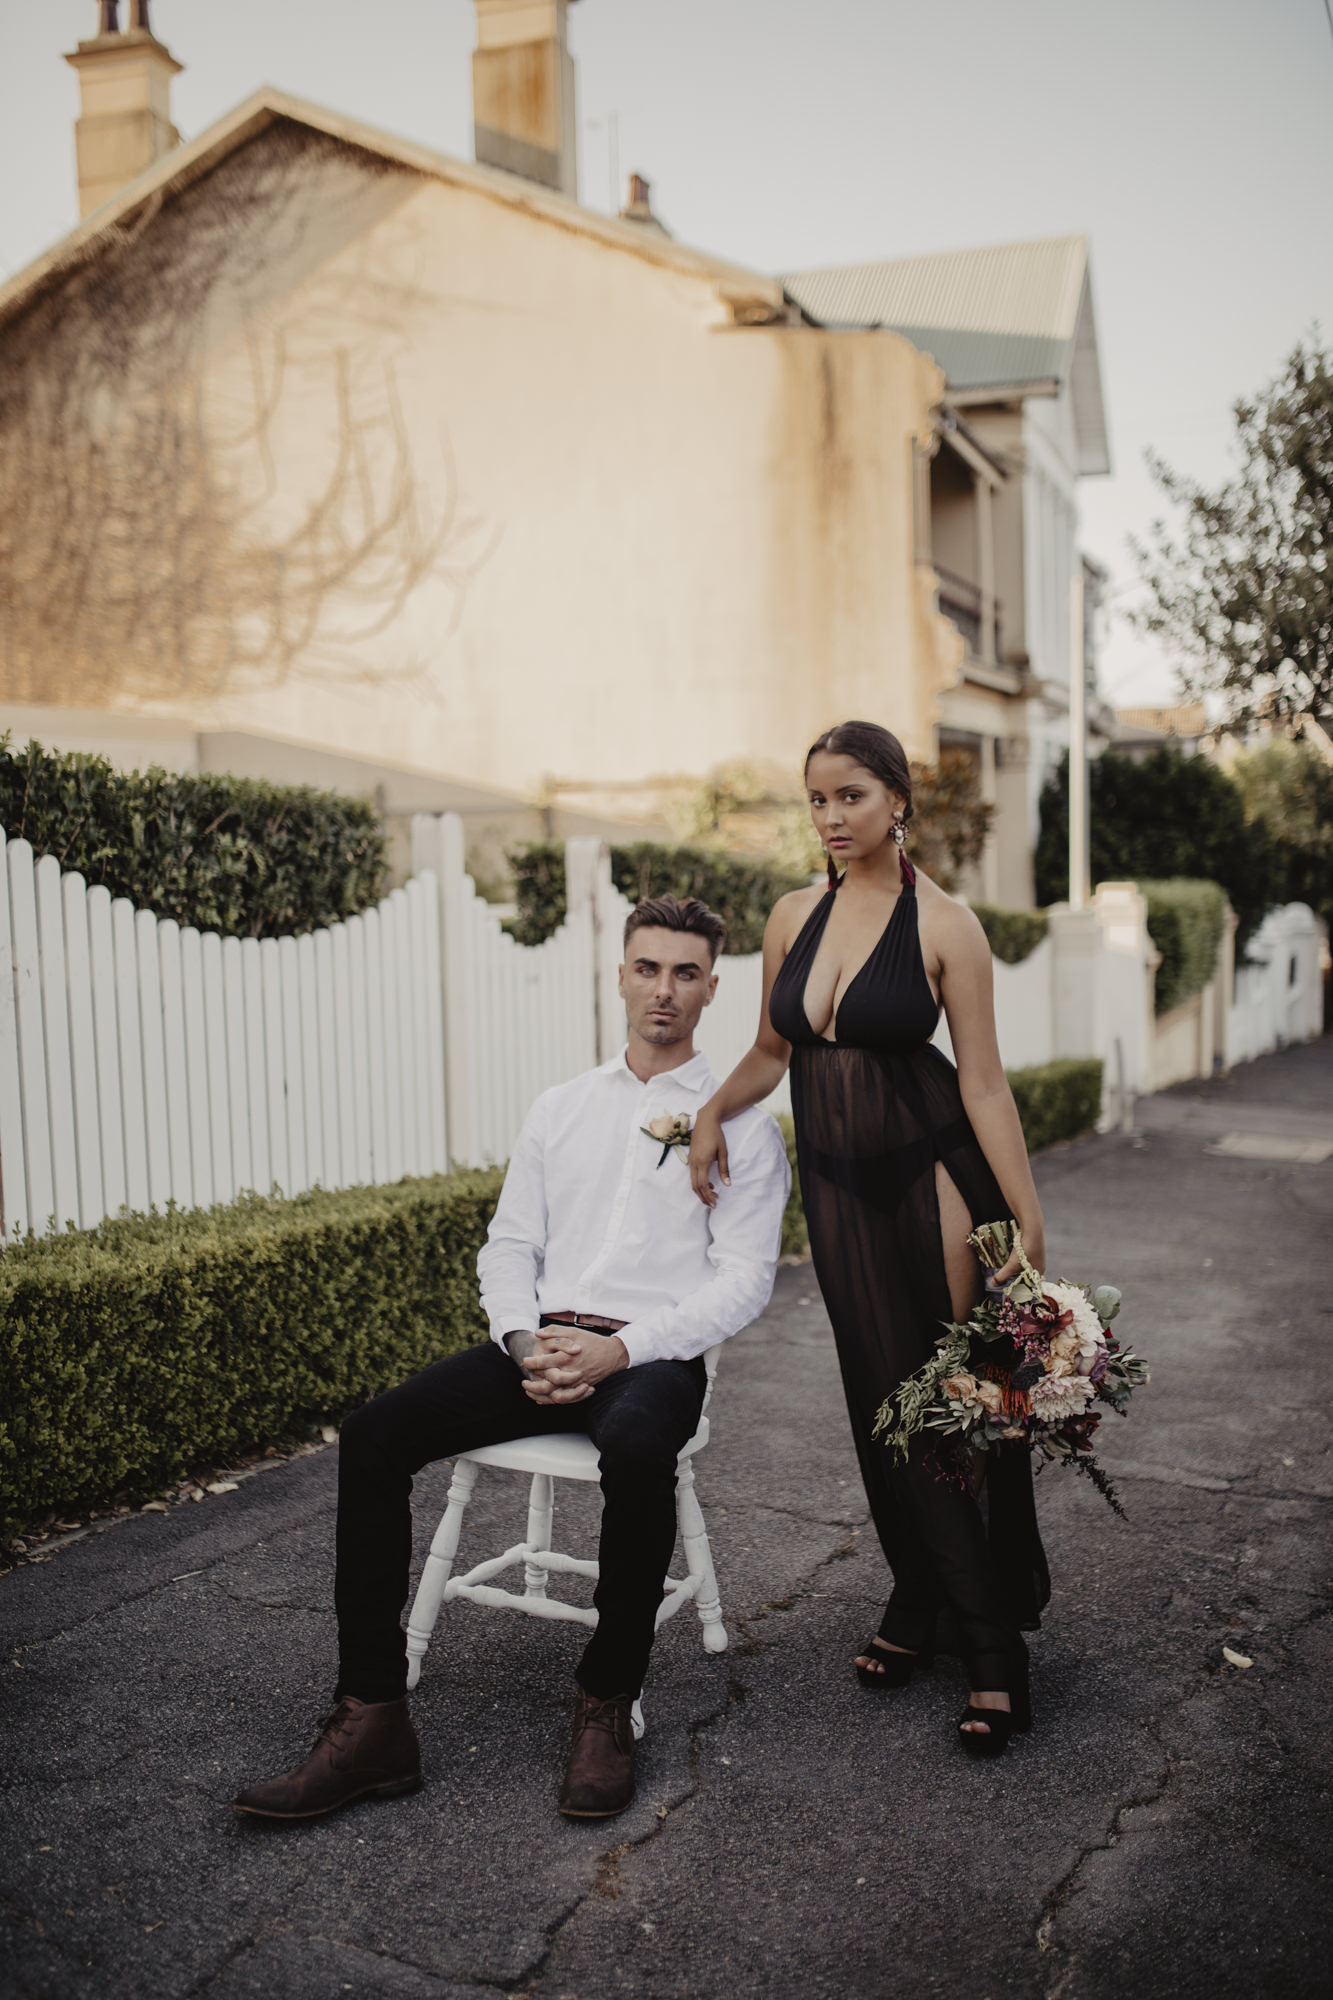 Jacob and Chanelle-27.JPG